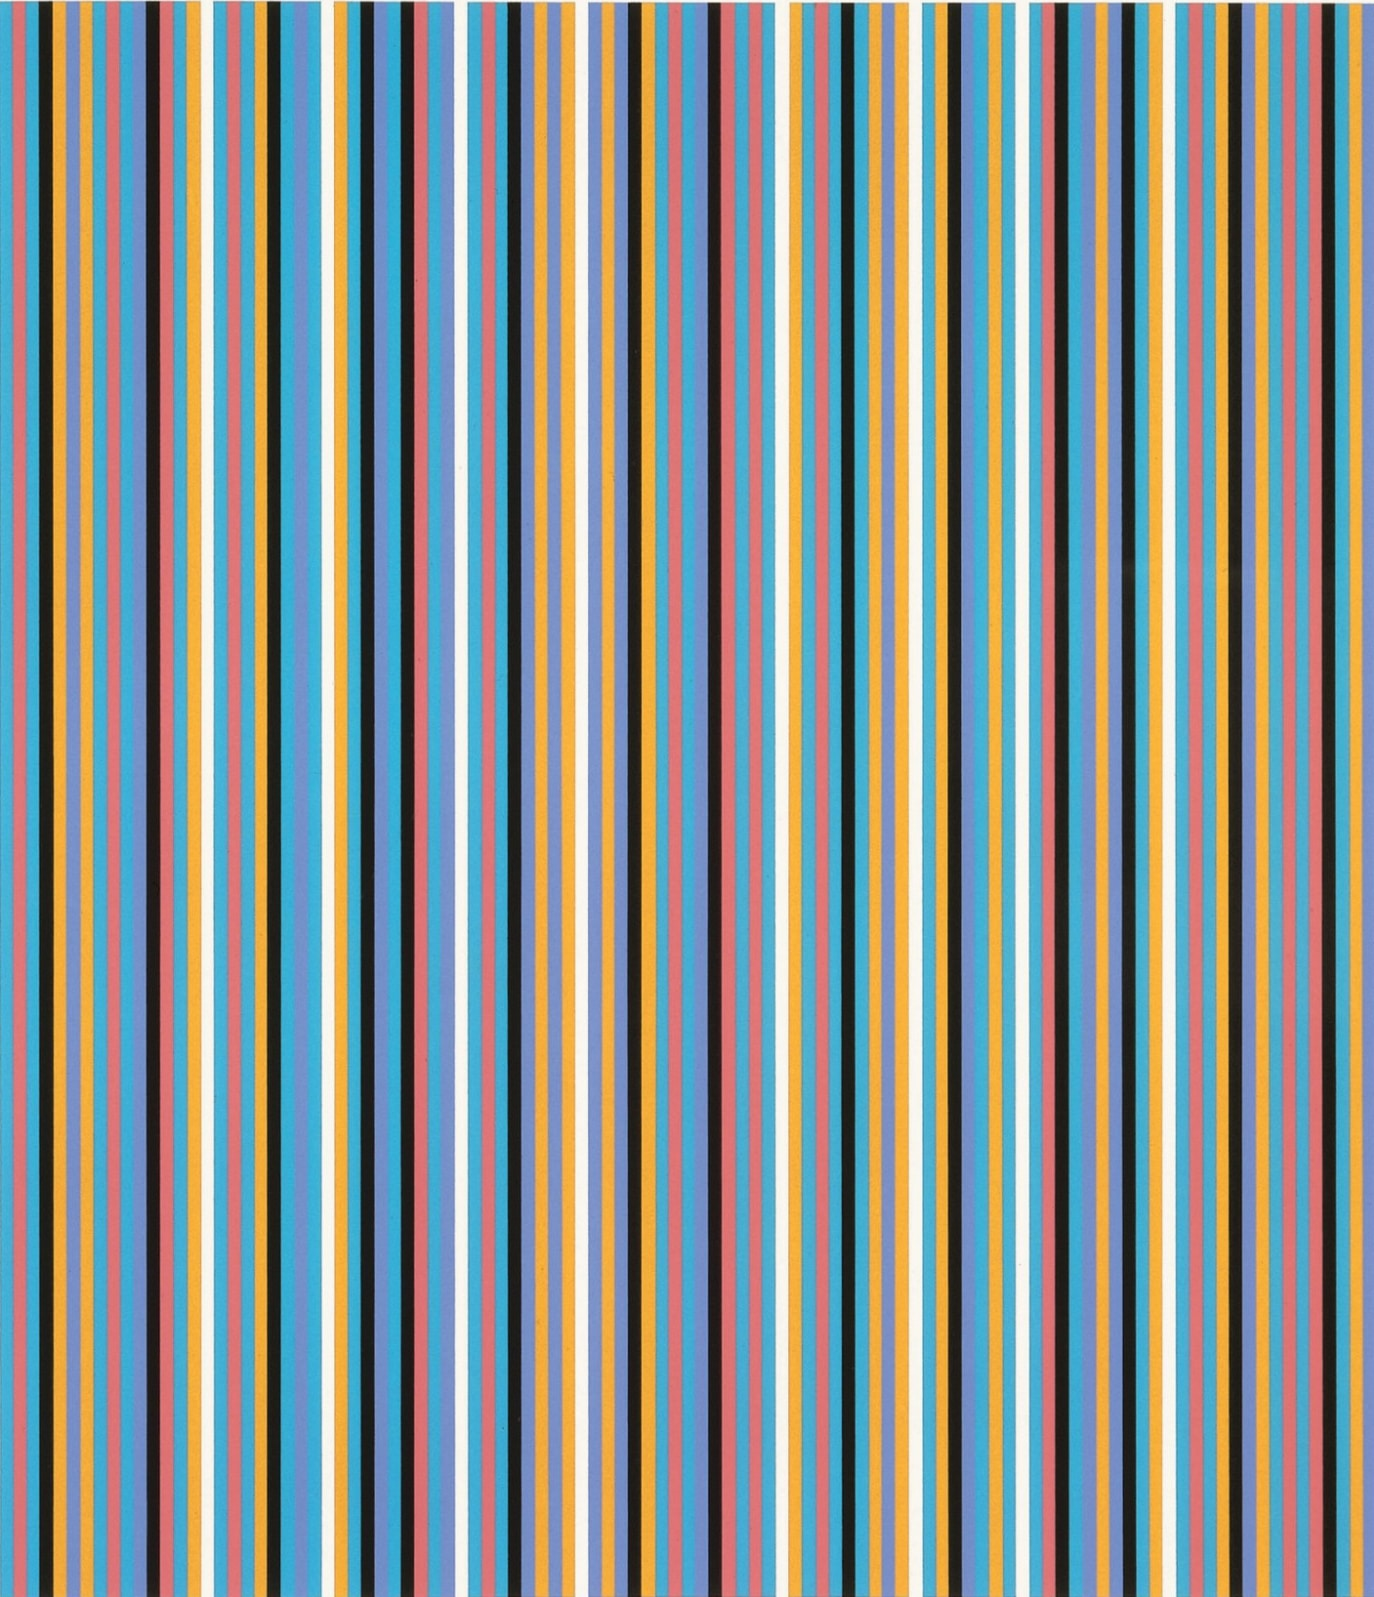 Bridget Riley, The Complete Prints, 1962 2020 Thames and Hudson Cristea Roberts Edge of light